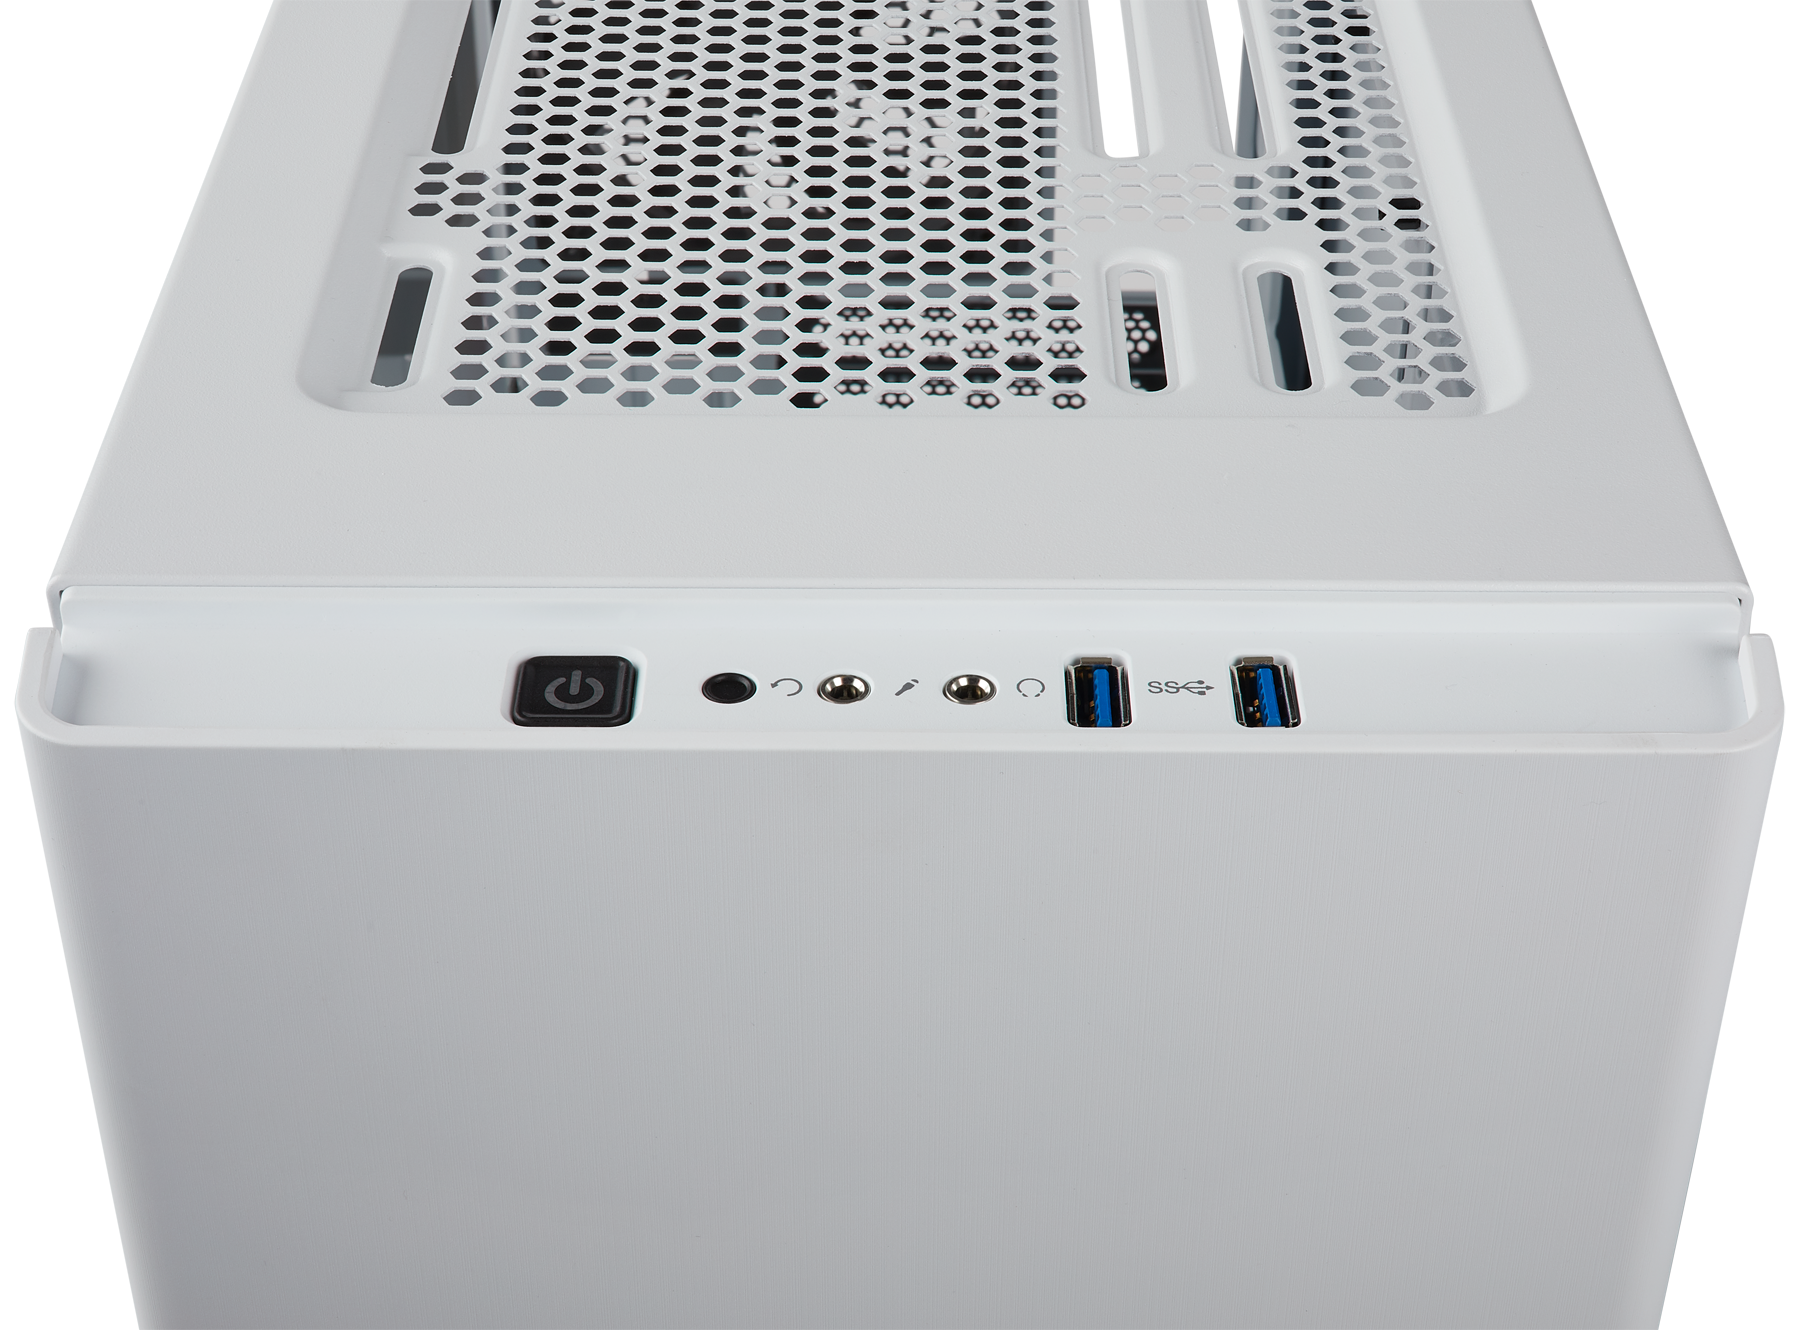 Corsair Carbide Series 275r Cc 9011131 Ww White Steel Plastic Stick Well The Plexiglass Here It Is Ready Power Supply Circuit Acrylic Atx Mid Tower Gaming Case